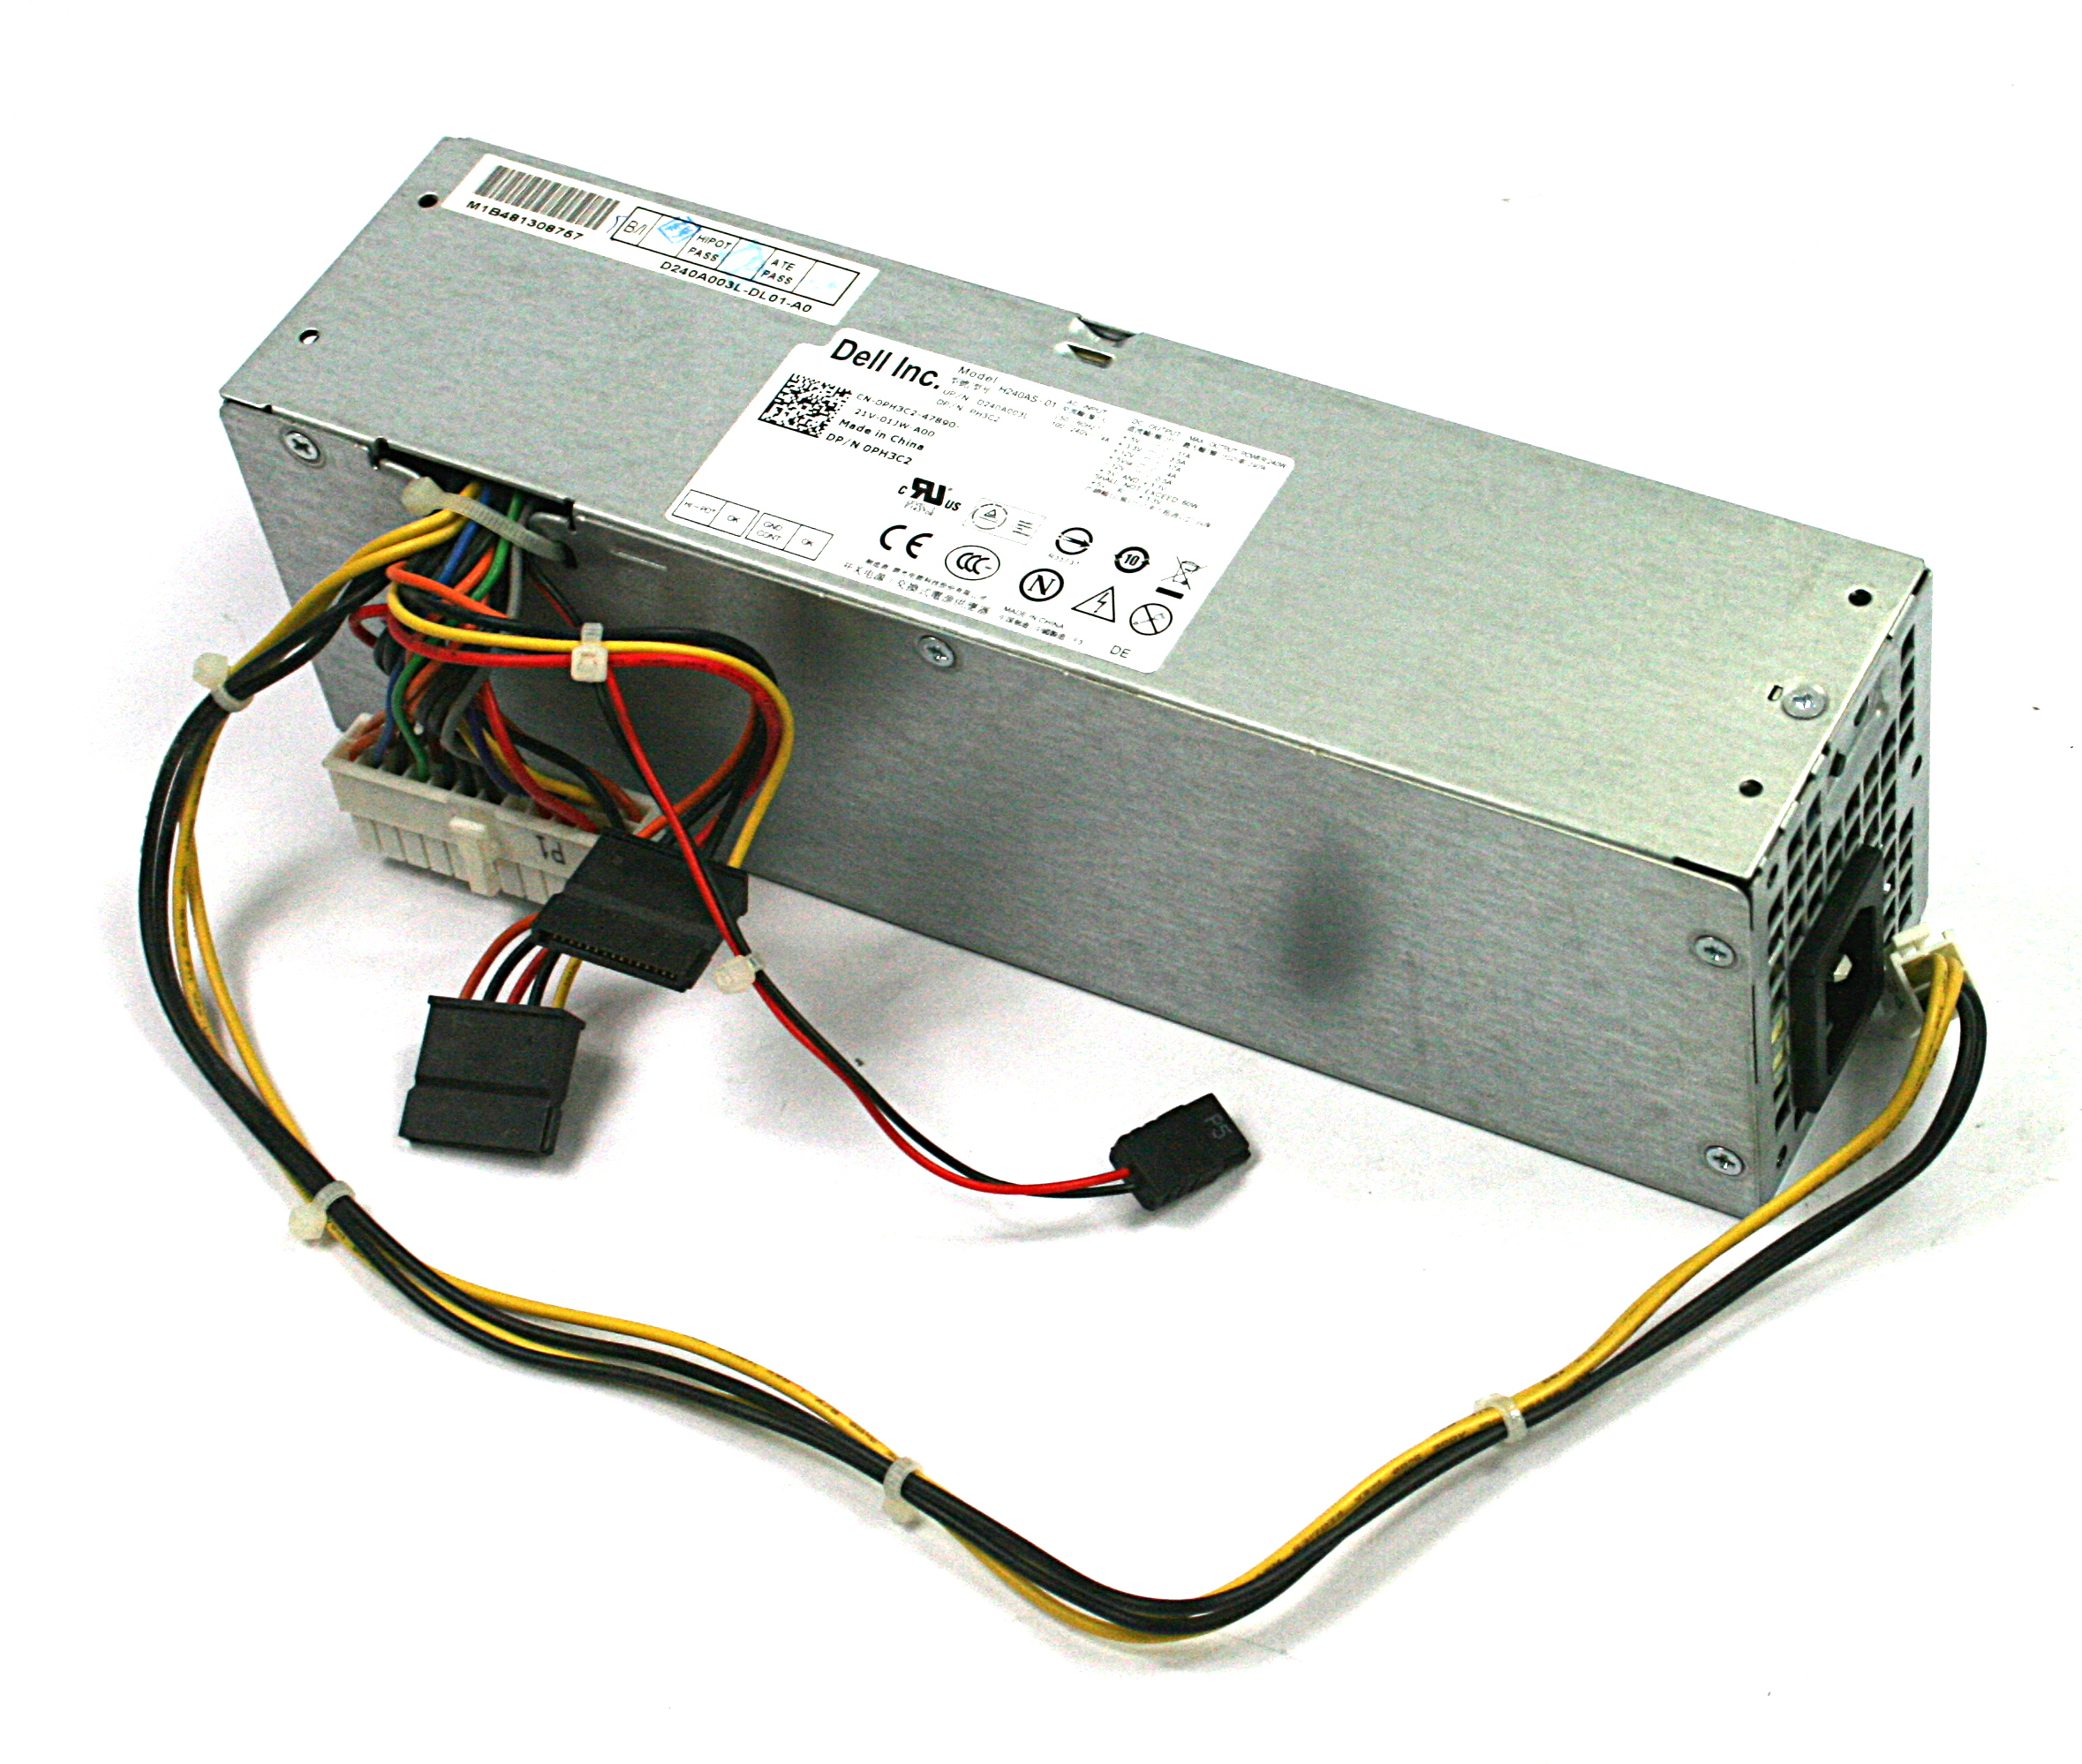 Dell PH3C2 Optiplex 7010  240W Power Supply, Model: H240AS-01